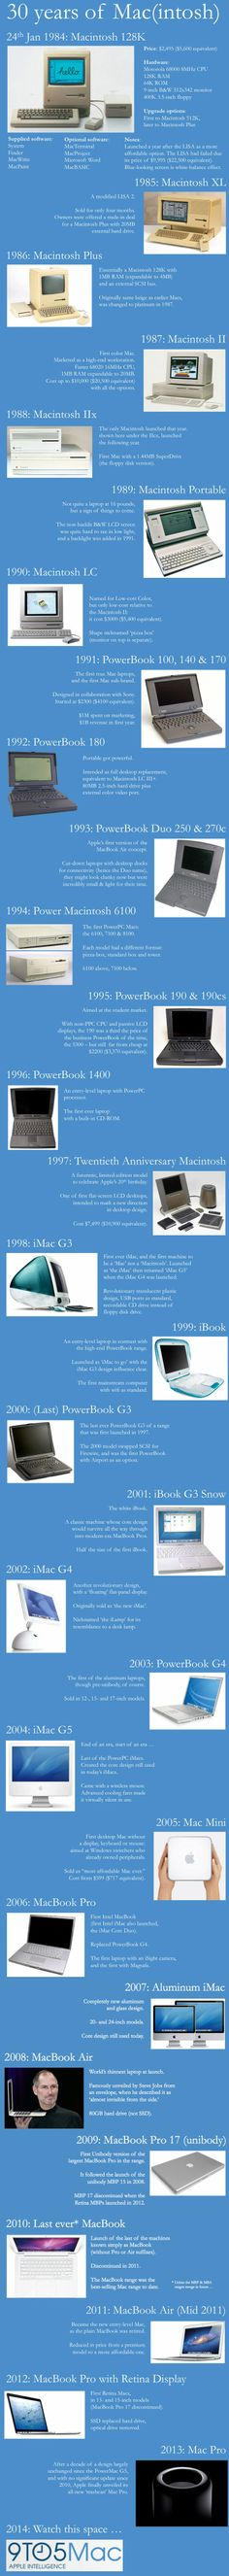 Today is the anniversary of the launch of the first Mac computer back in This great infographic by 9 to 5 Mac looks back on some of the notable Macs that have appeared over those 30 years. Apple Mac Computer, Mac Looks, Boston Dynamics, Steve Wozniak, Mac Collection, Happy 30th Birthday, Apple Inc, Change The World